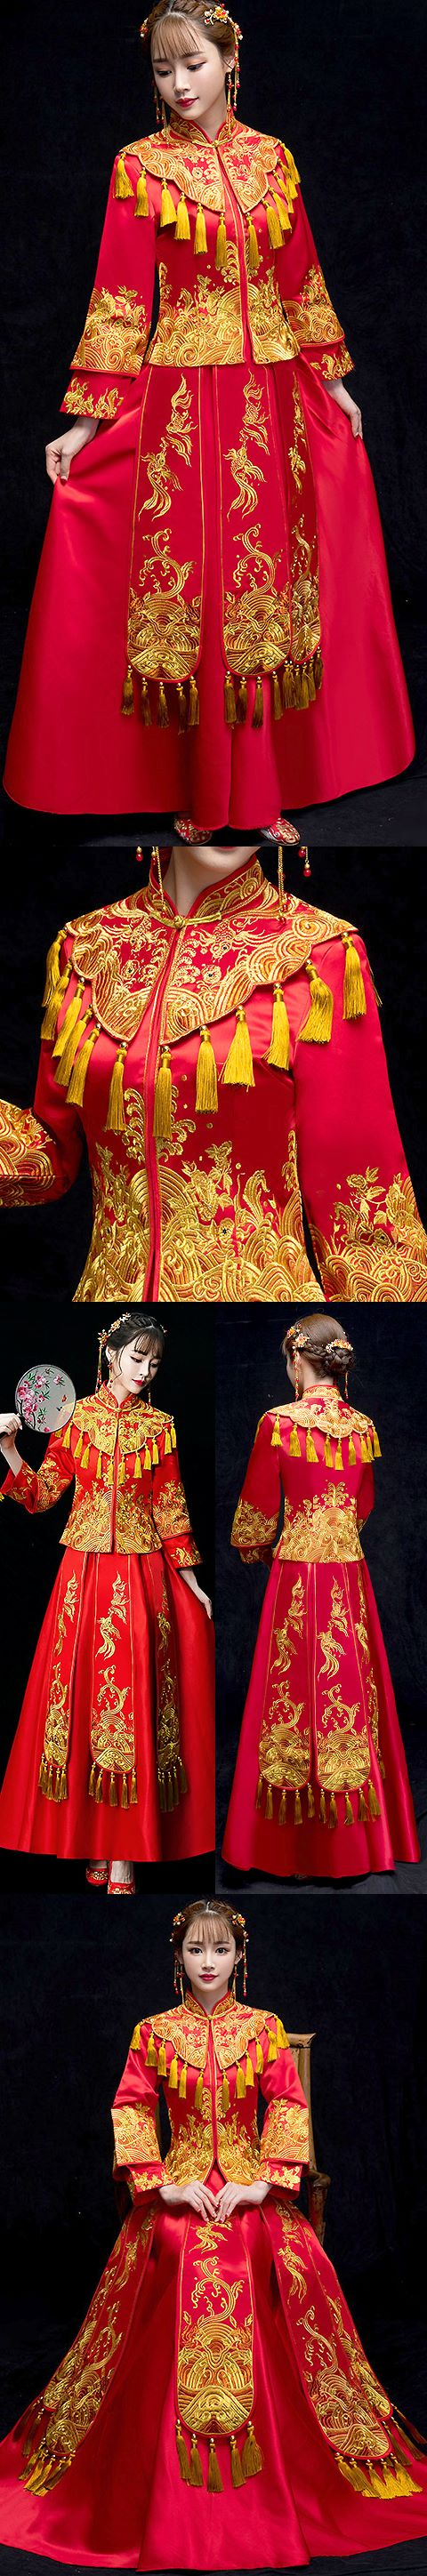 Gold/Red Prom/Bridal Skirt Suit